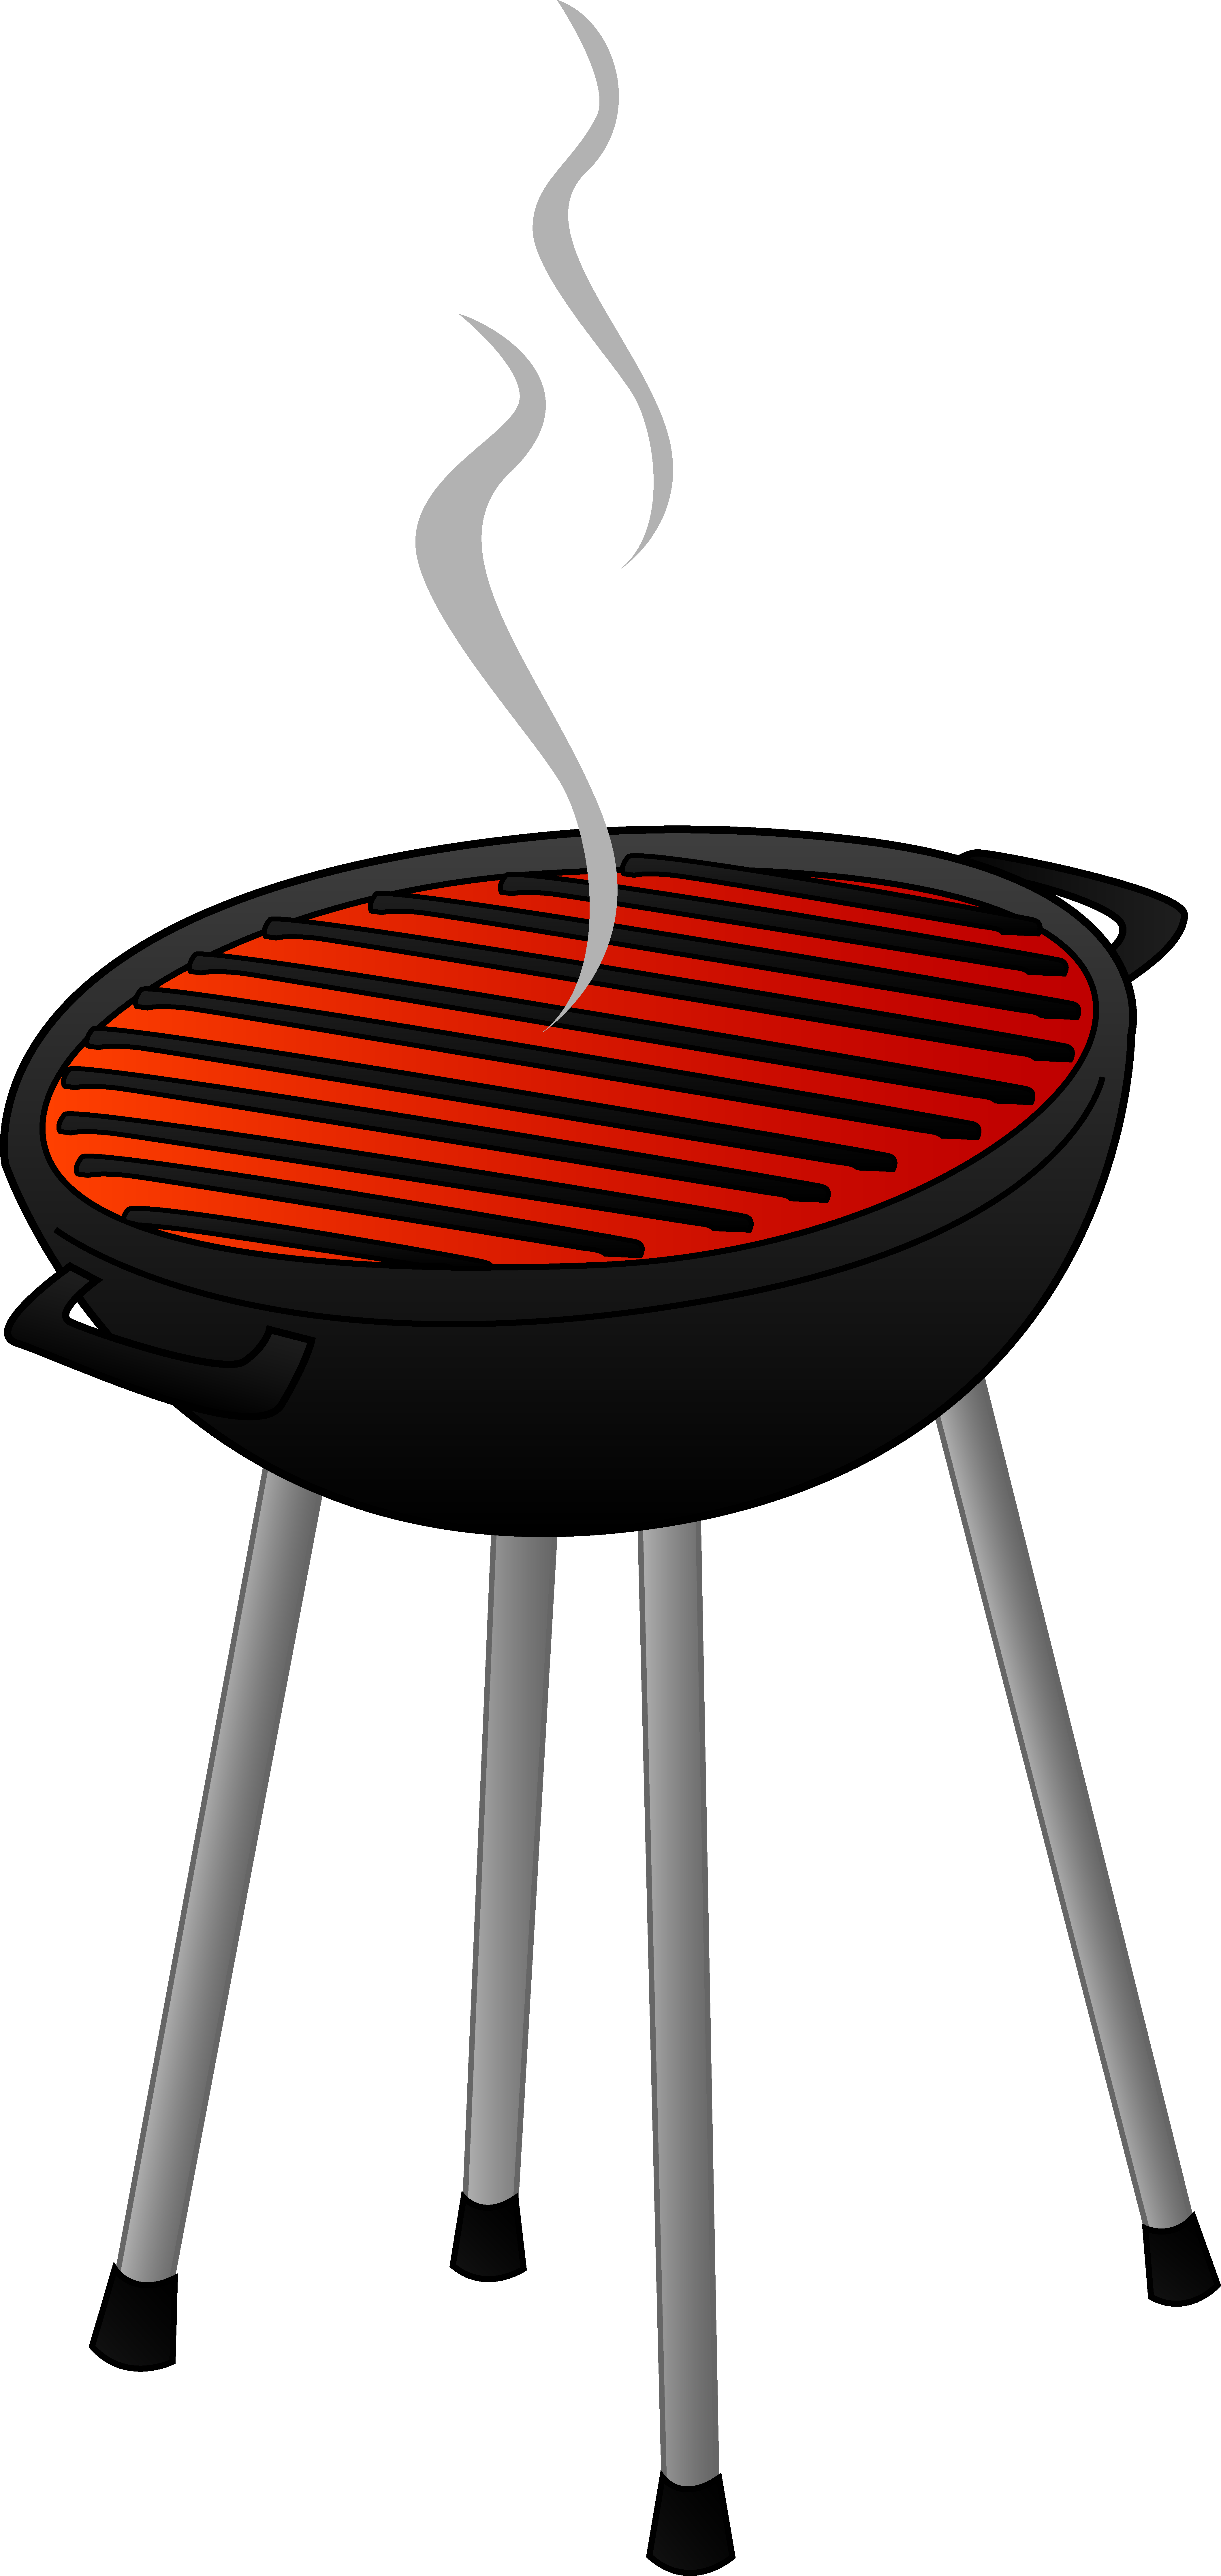 Free bbq grill clipart vector transparent Bbq Clip Art Image | Sewing - APLQ / How To.. / Clip Art | Grill ... vector transparent